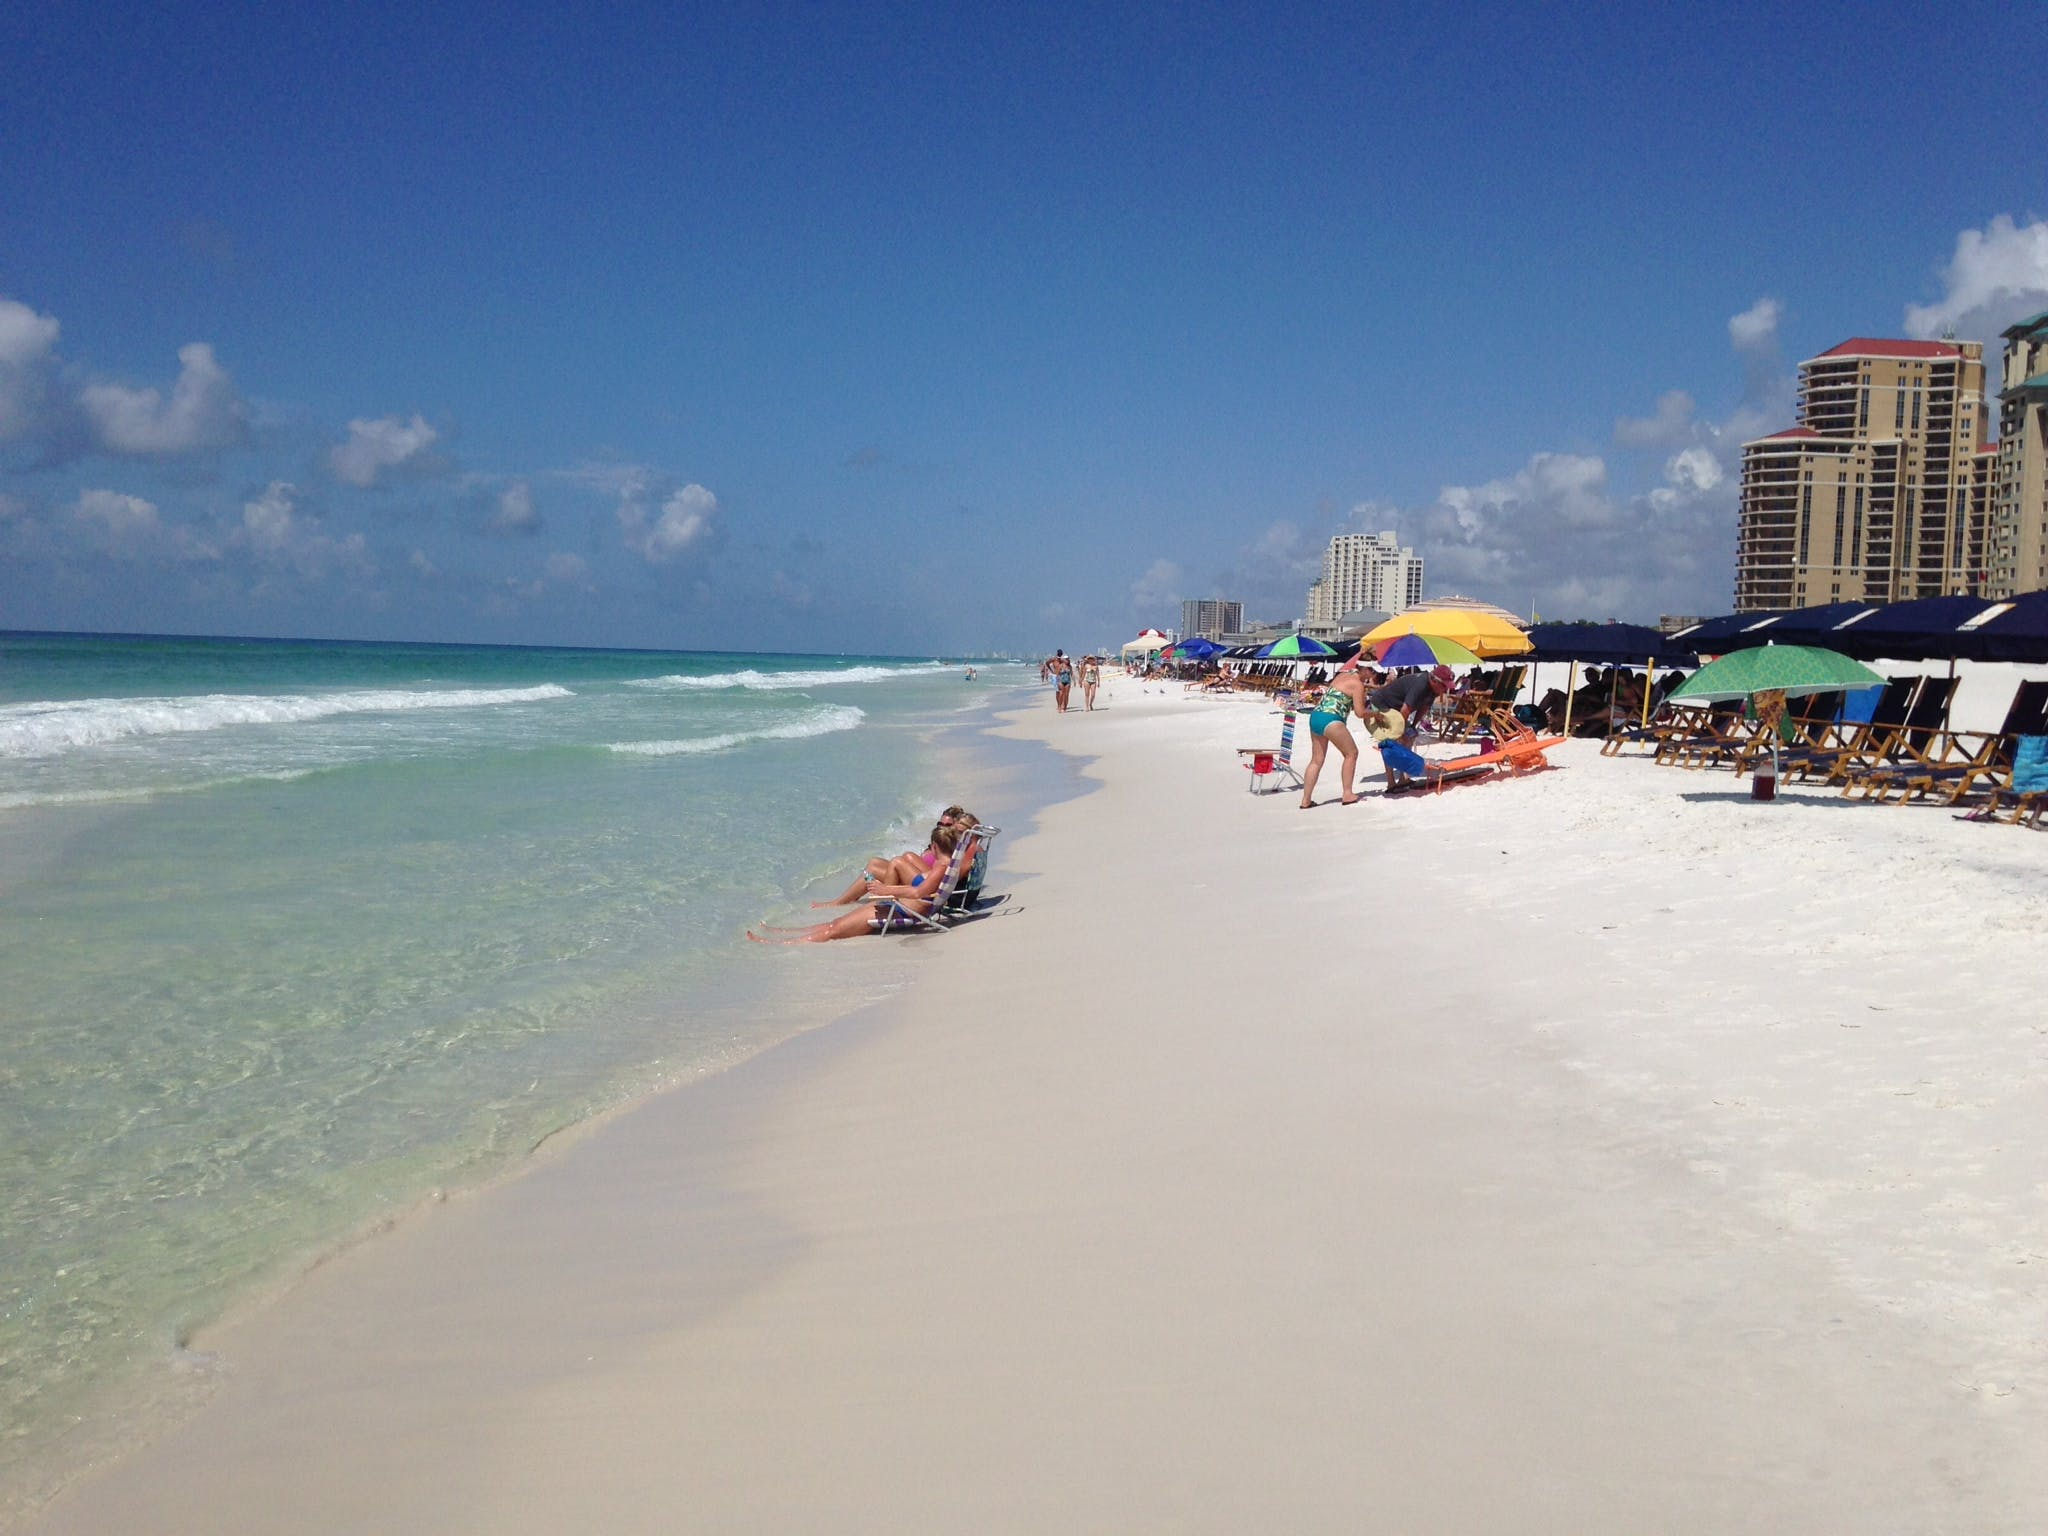 Free stock photo of beach, everyday people, florida, Gulf of Mexico